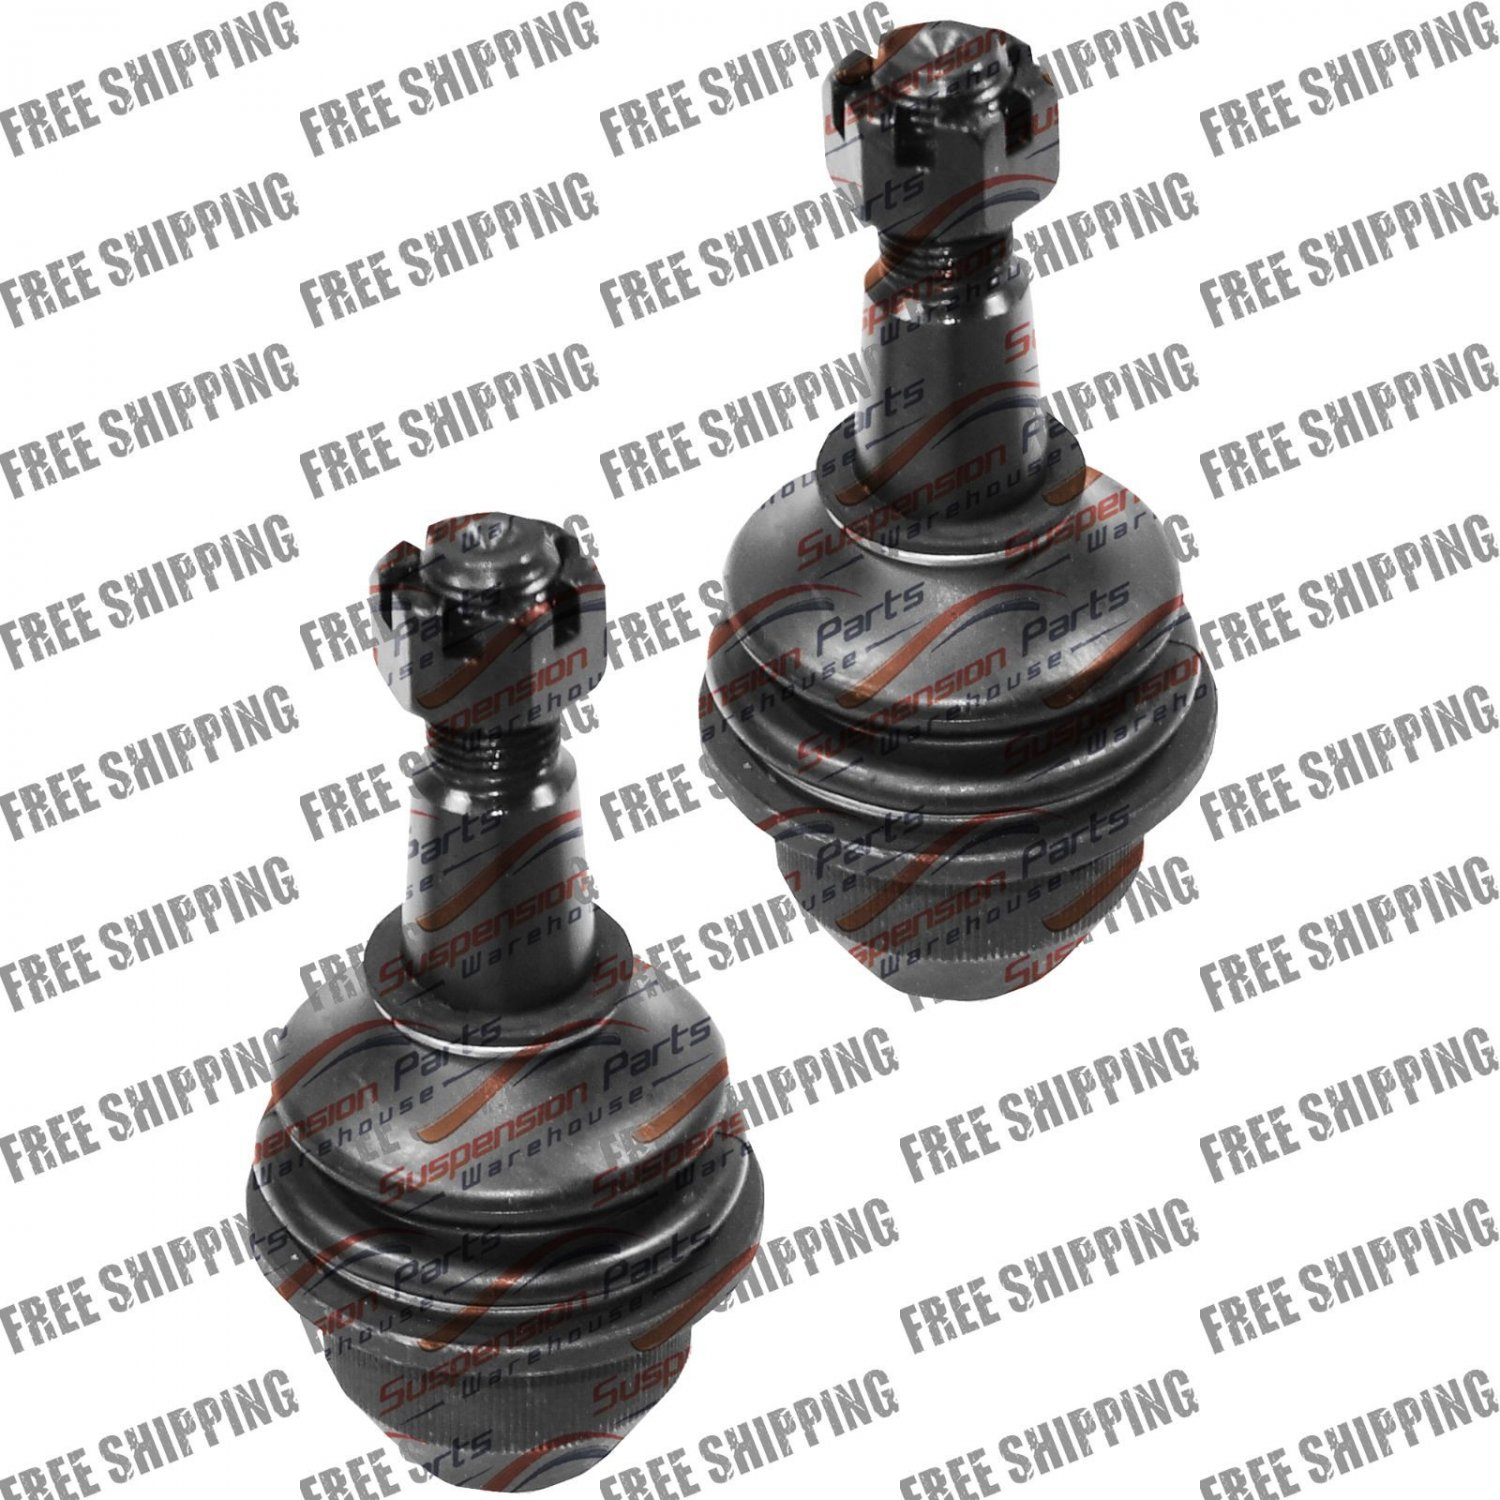 Chevrolet Gmc Front Lower Ball Joint  w/ 46.13 mm Press Fit Type Suspension Set